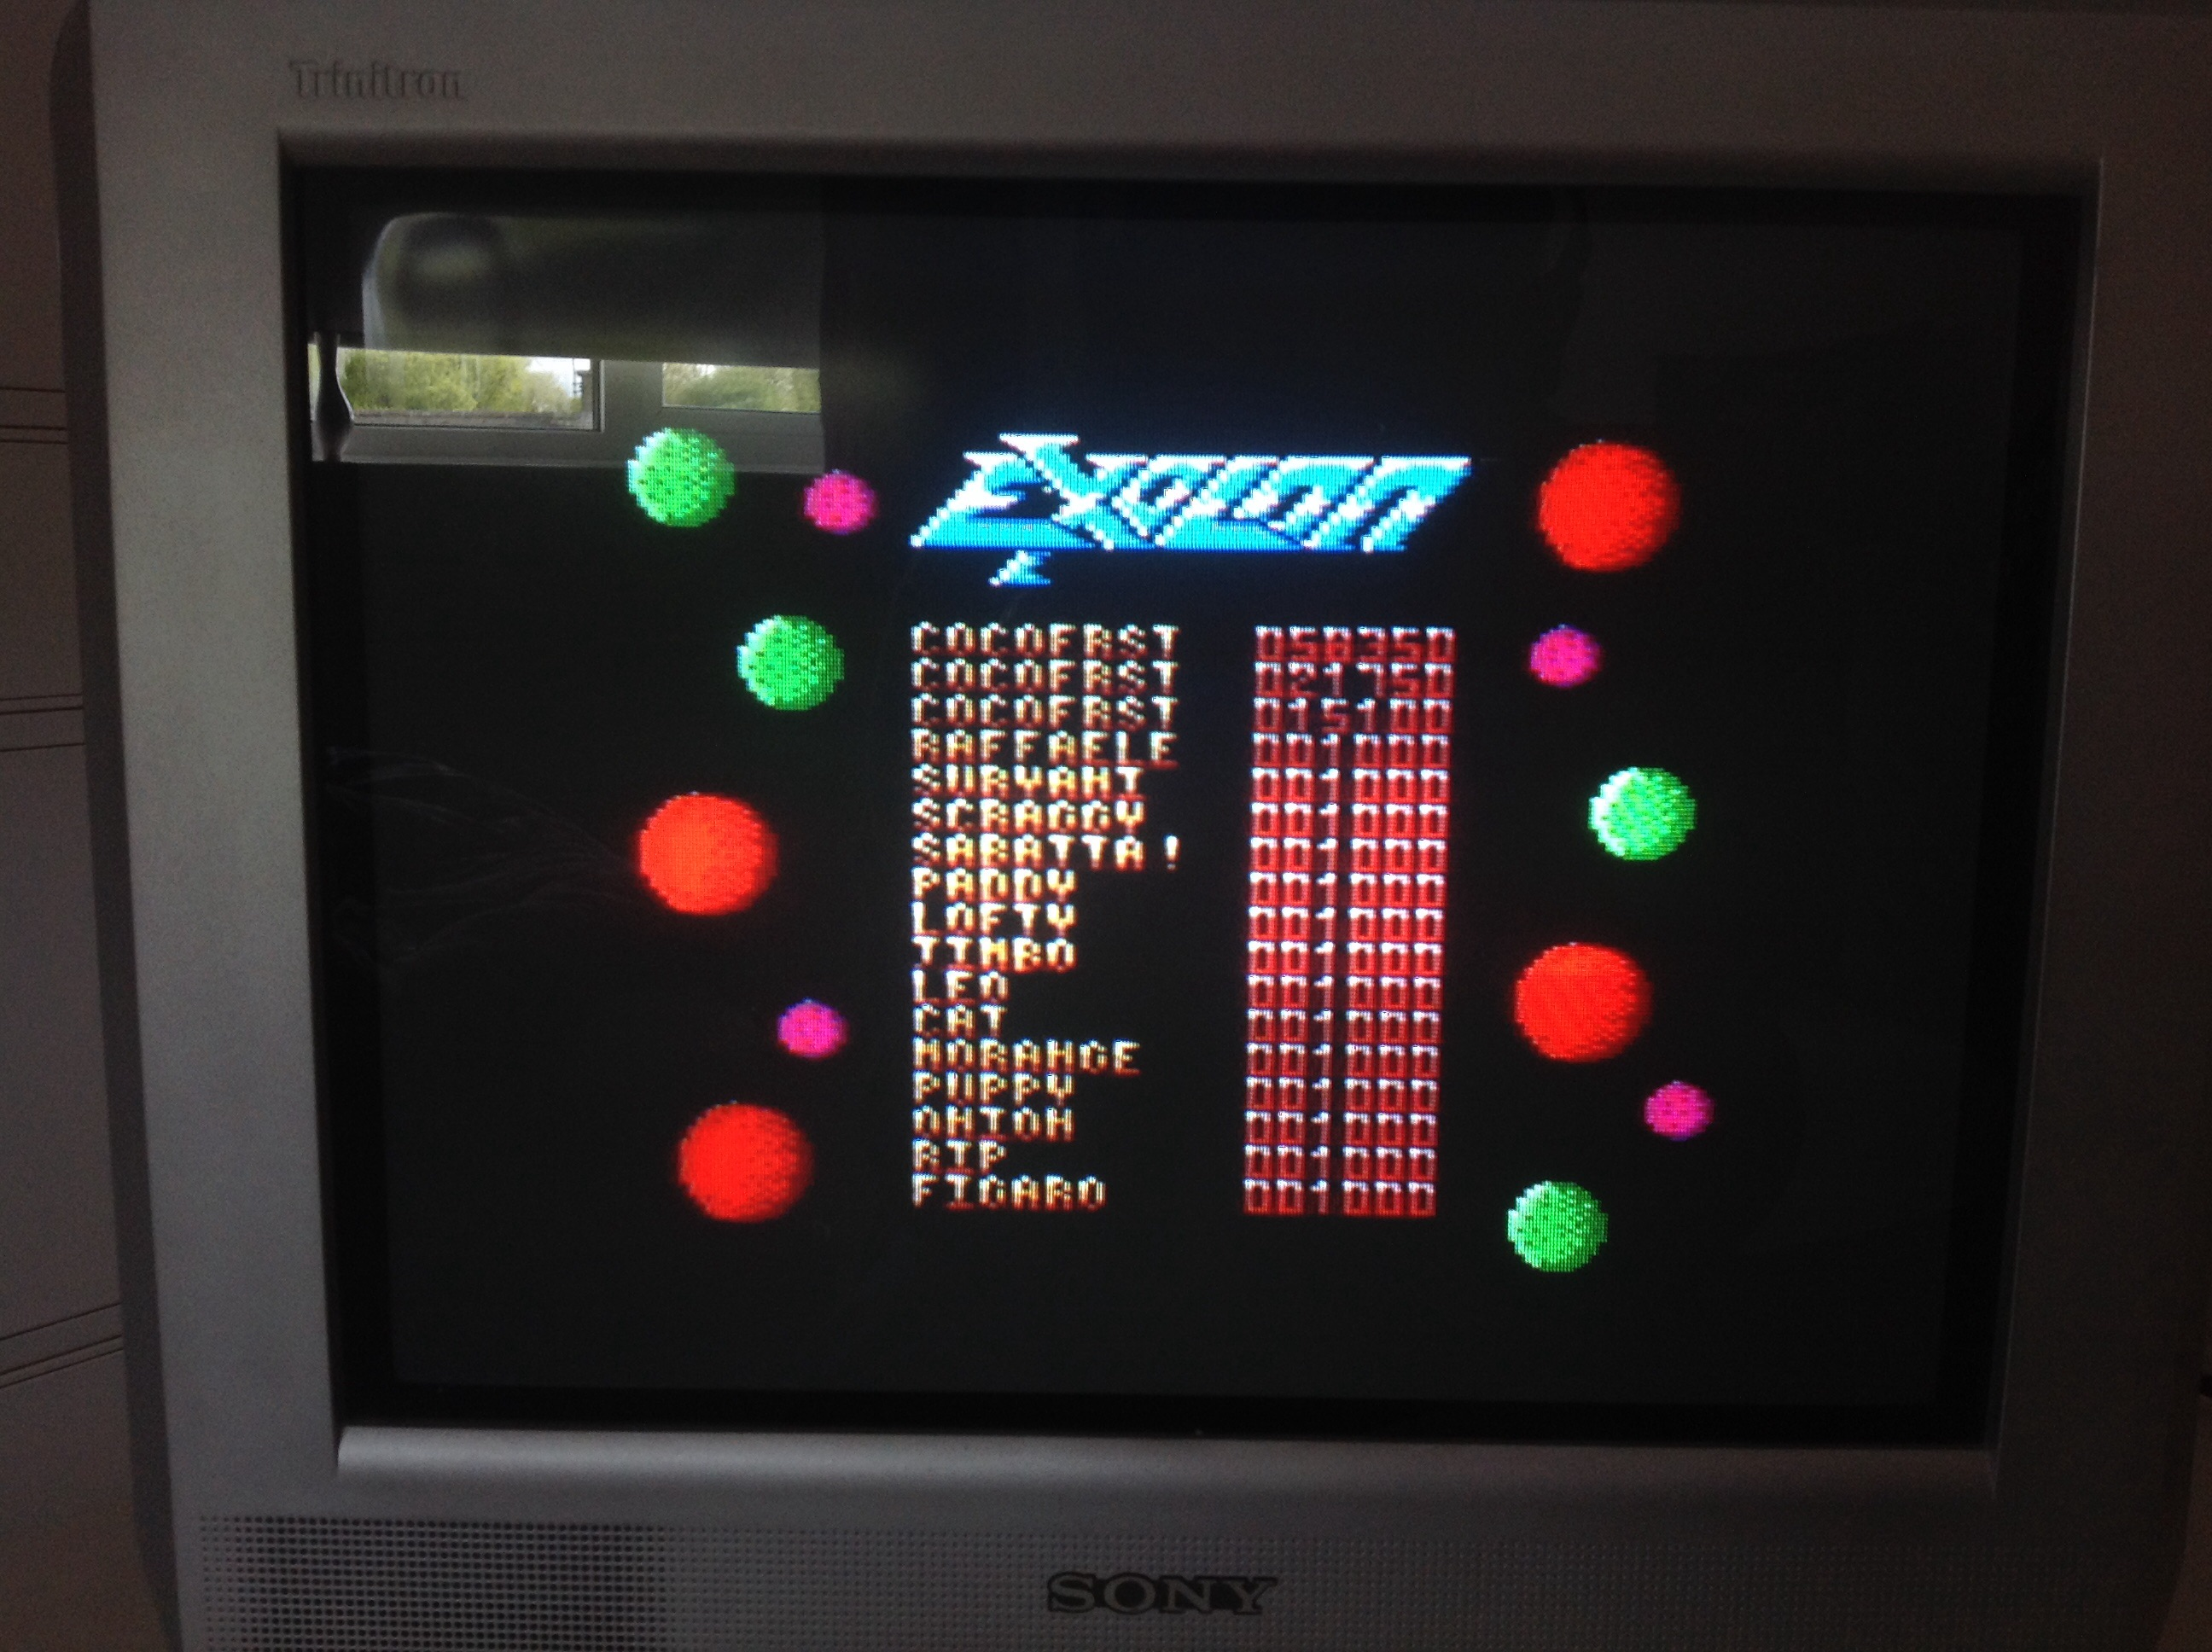 CoCoForest: Exolon (Amstrad CPC) 58,350 points on 2015-05-04 04:08:41